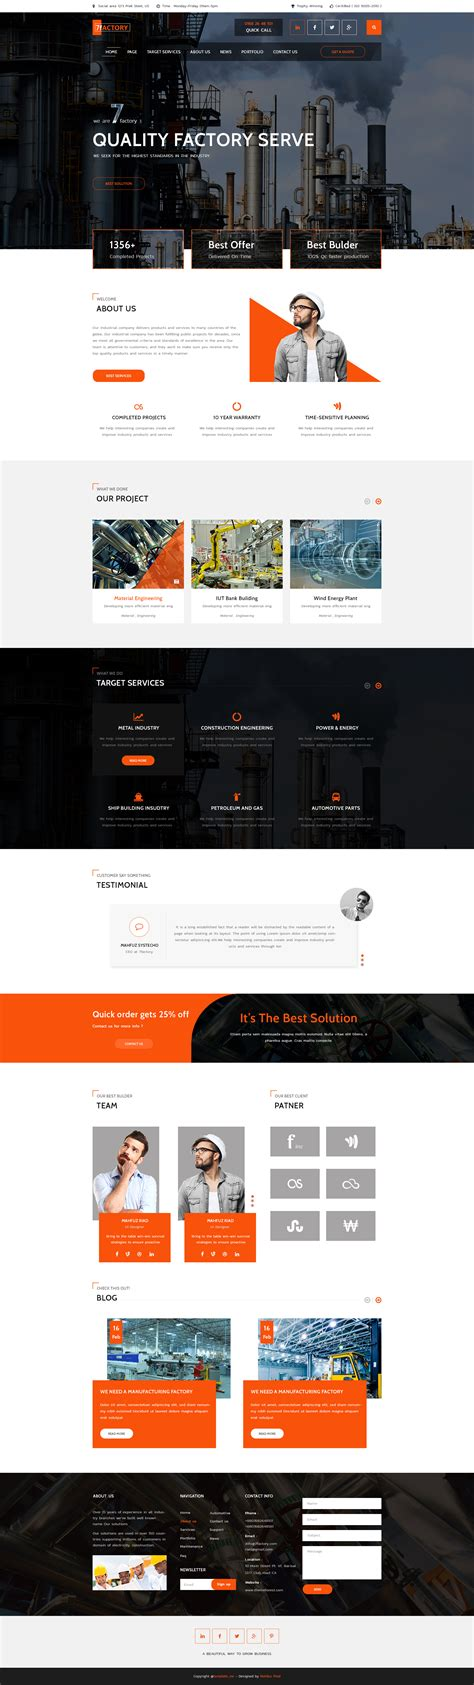 7factory Industrial Manufacturing Psd Template By Template Mr Themeforest Free Manufacturing Website Templates